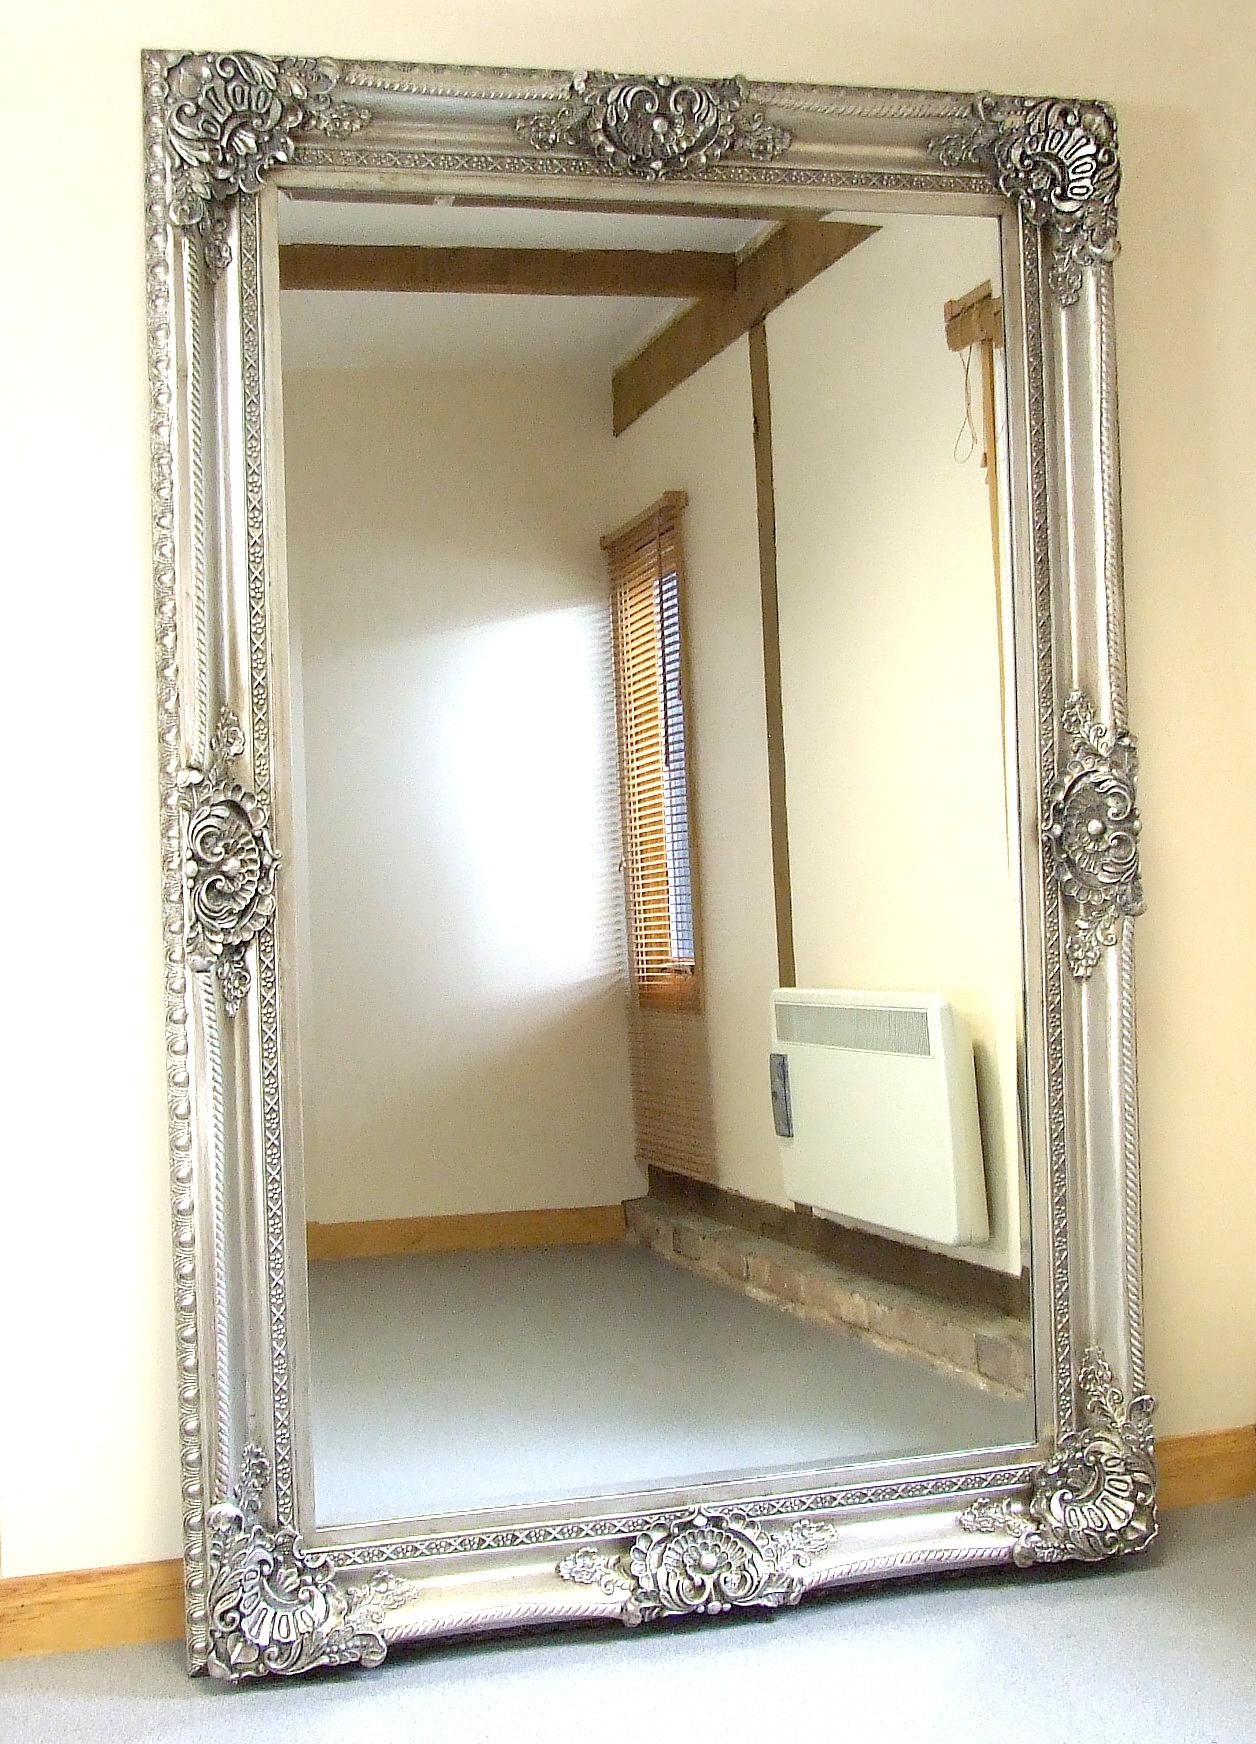 Decorating: Seville Ornate Extra Large French Full Length Wall Regarding Full Length Ornate Mirror (Image 5 of 20)